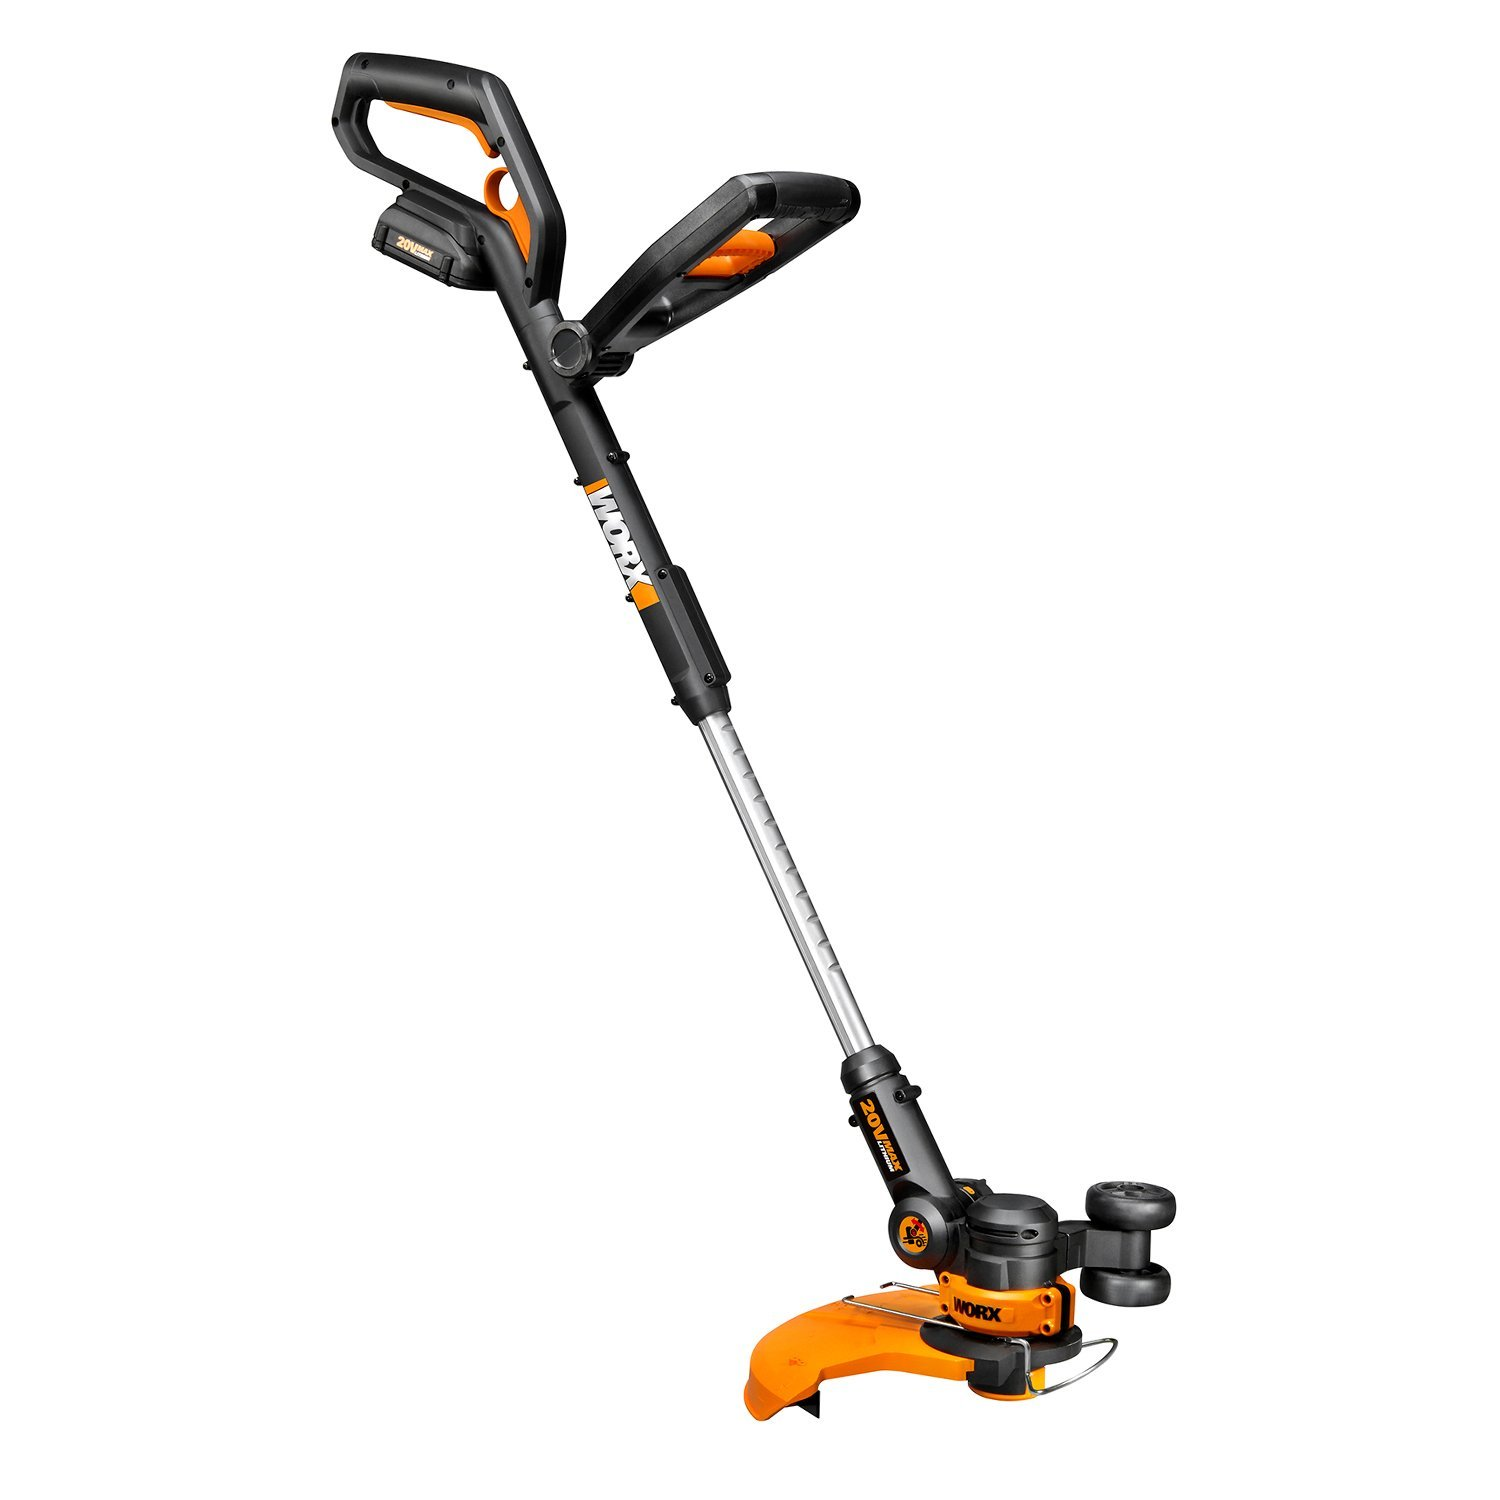 Save Big On The Worx 20v String Trimmer Amp Multi Purpose